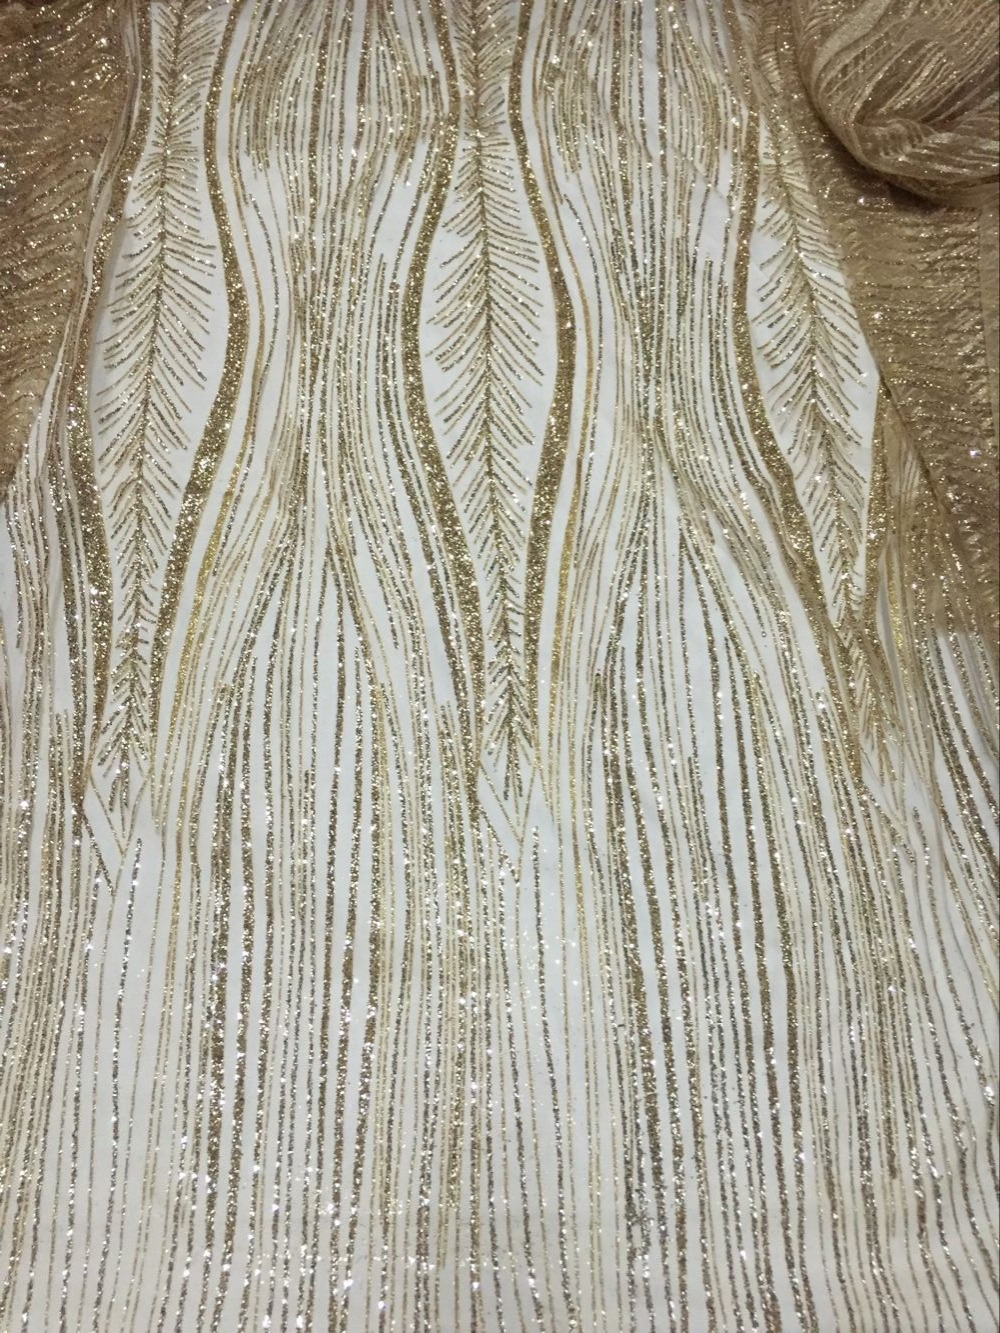 2019 Latest French Nigerian Lace Fabric High Quality African Tulle Lace Fabric For Wedding French Tulle